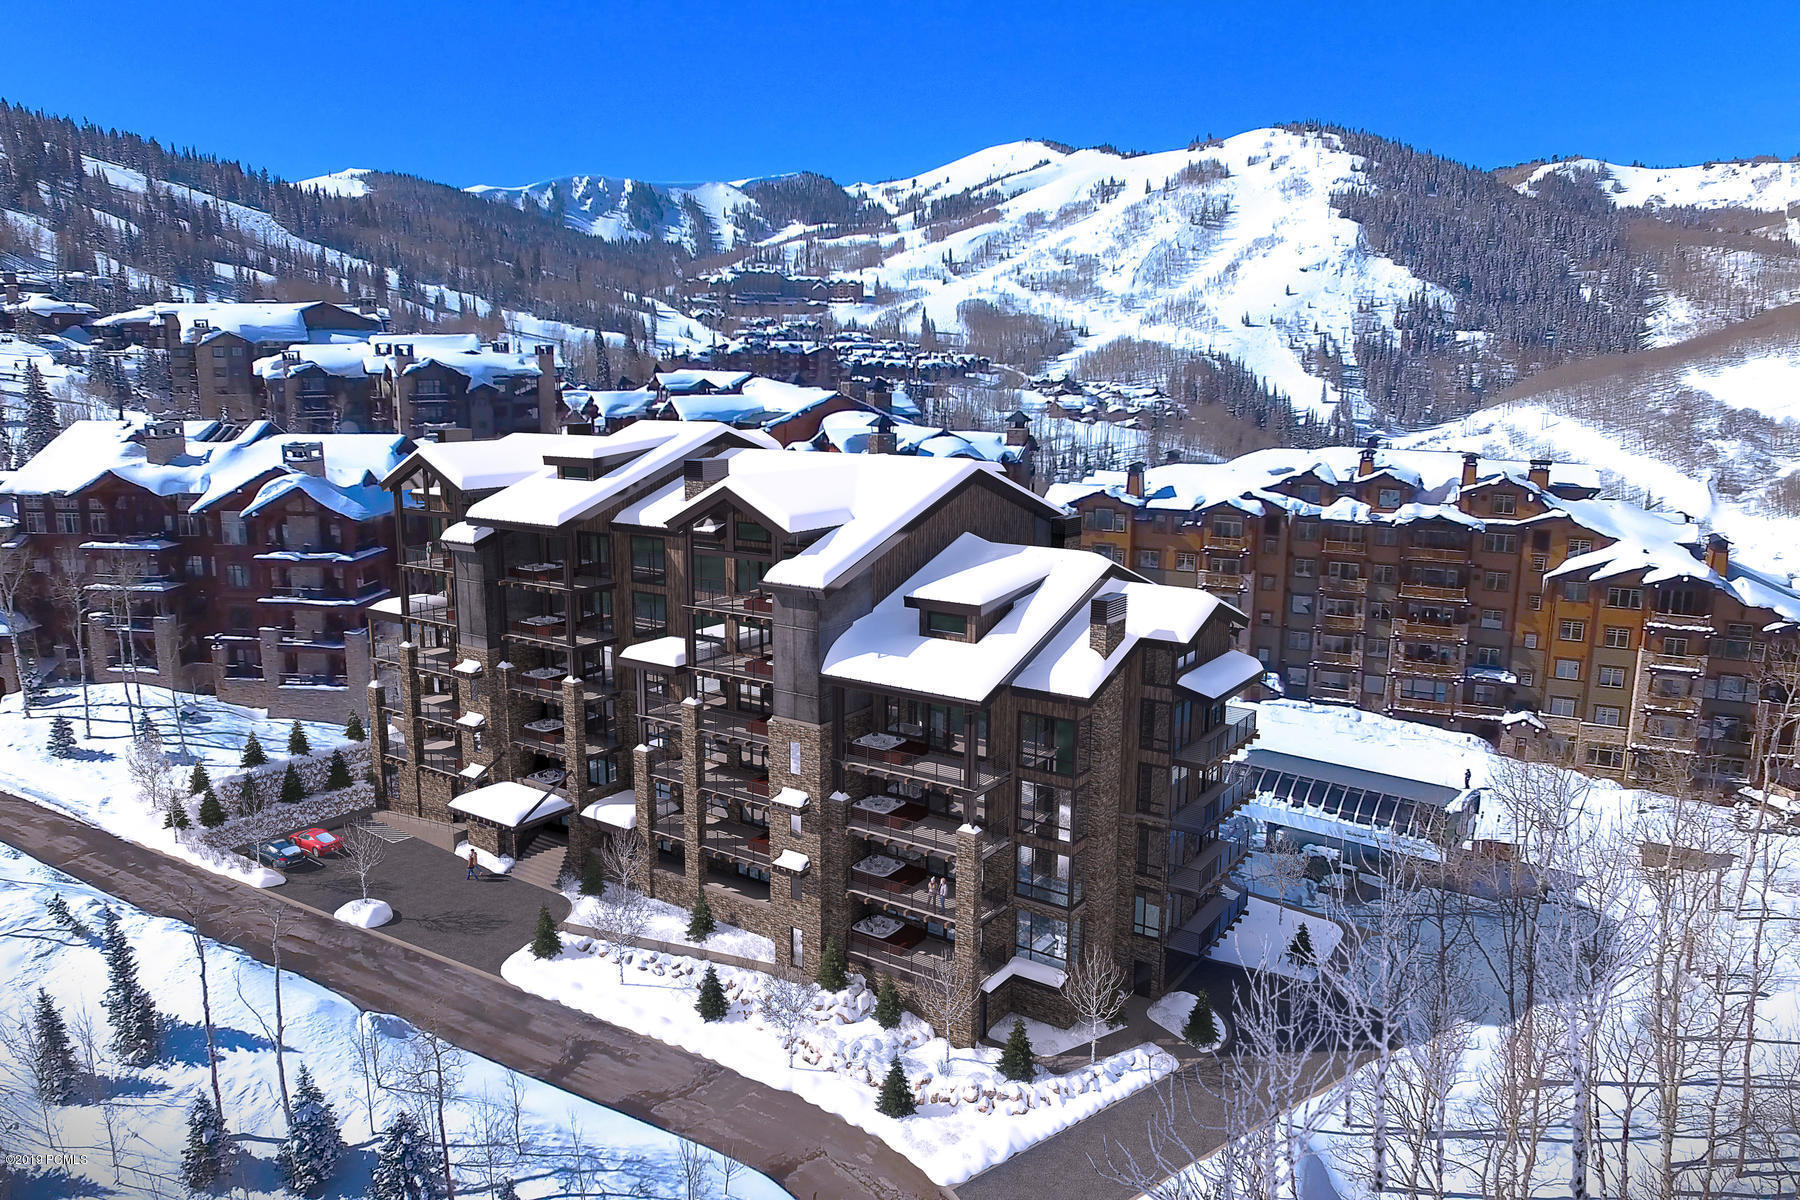 7697 Village Way, Park City, Utah 84060, 4 Bedrooms Bedrooms, ,5 BathroomsBathrooms,Condominium,For Sale,Village Way,11906433